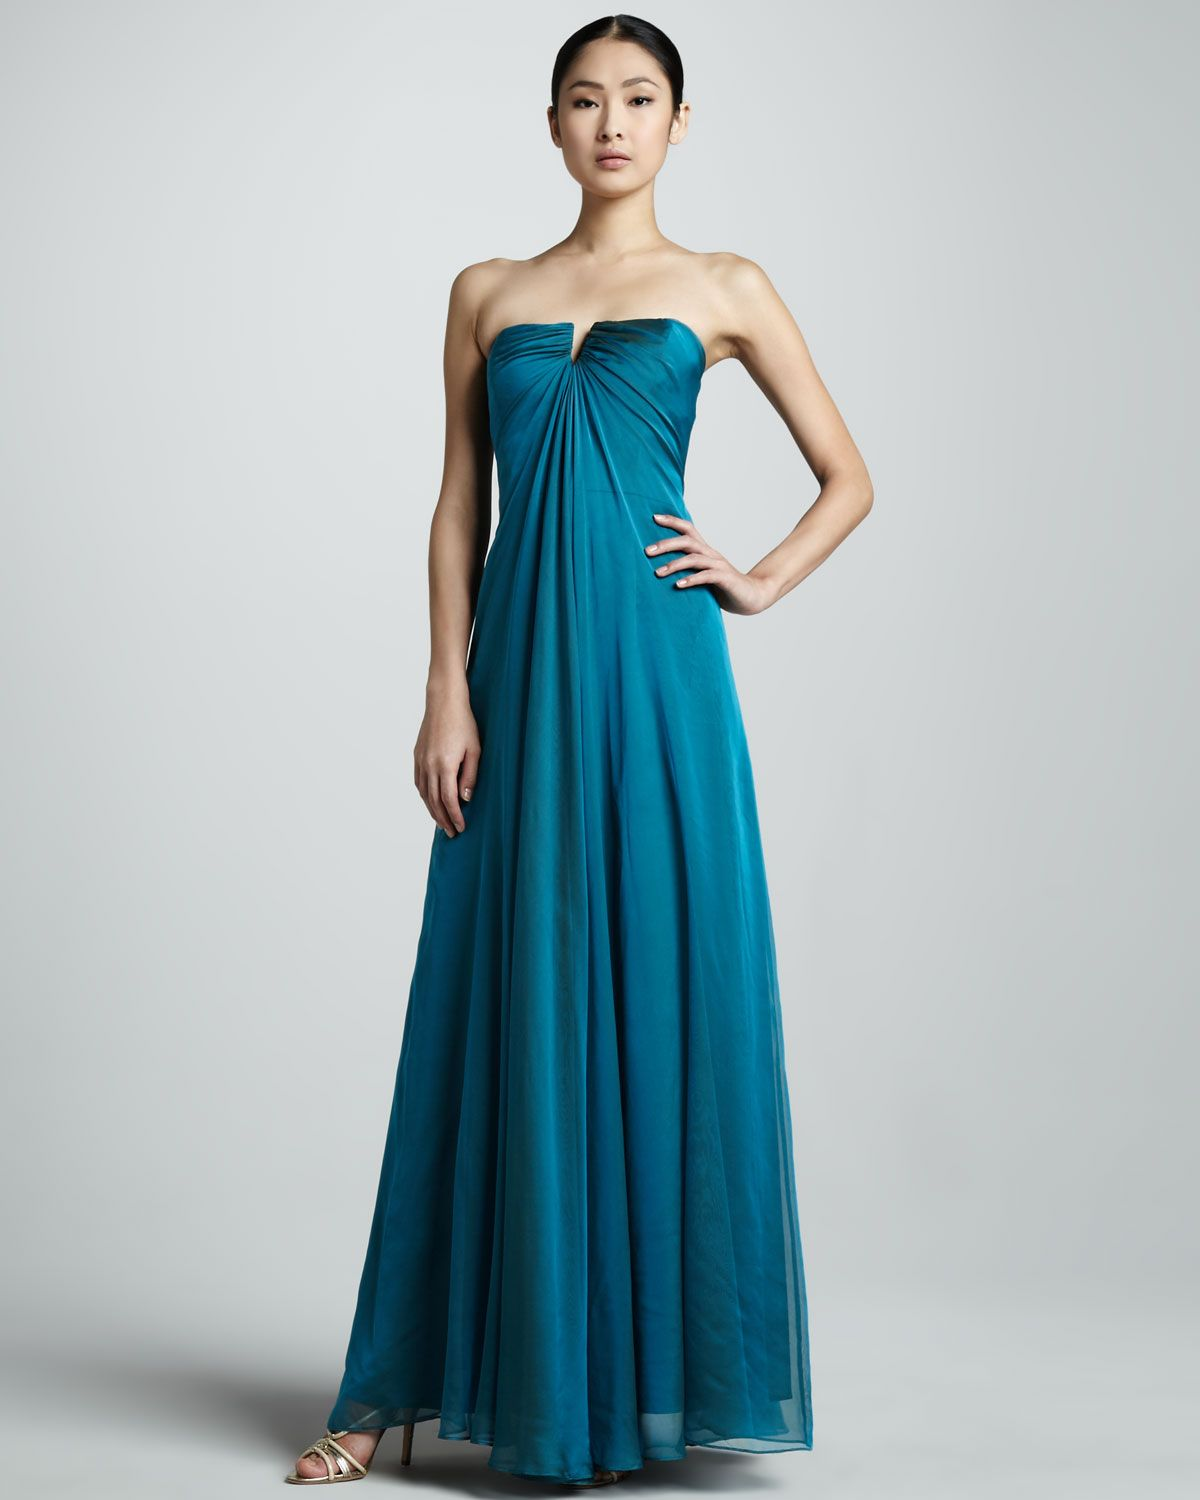 http://ncrni.com/nicole-miller-strapless-chiffon-gown-p-1853.html ...